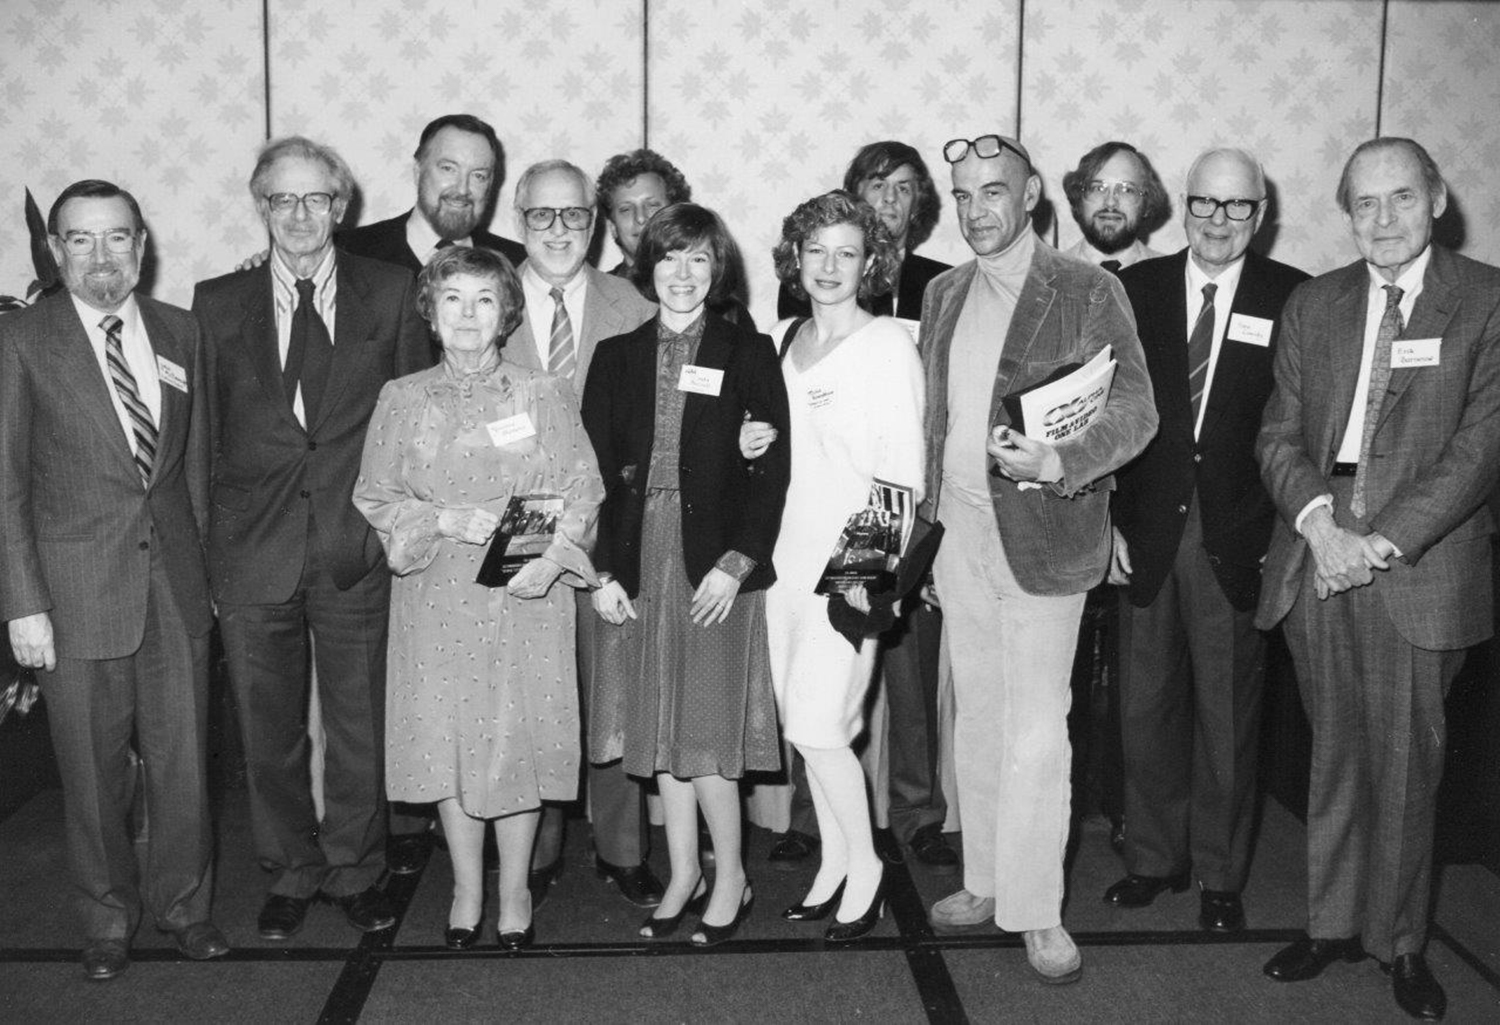 IDA Staff and inaugural IDA Documentary Awards winners gathered at the Sheraton Premiere hotel in Universal City, Calif. in 1985